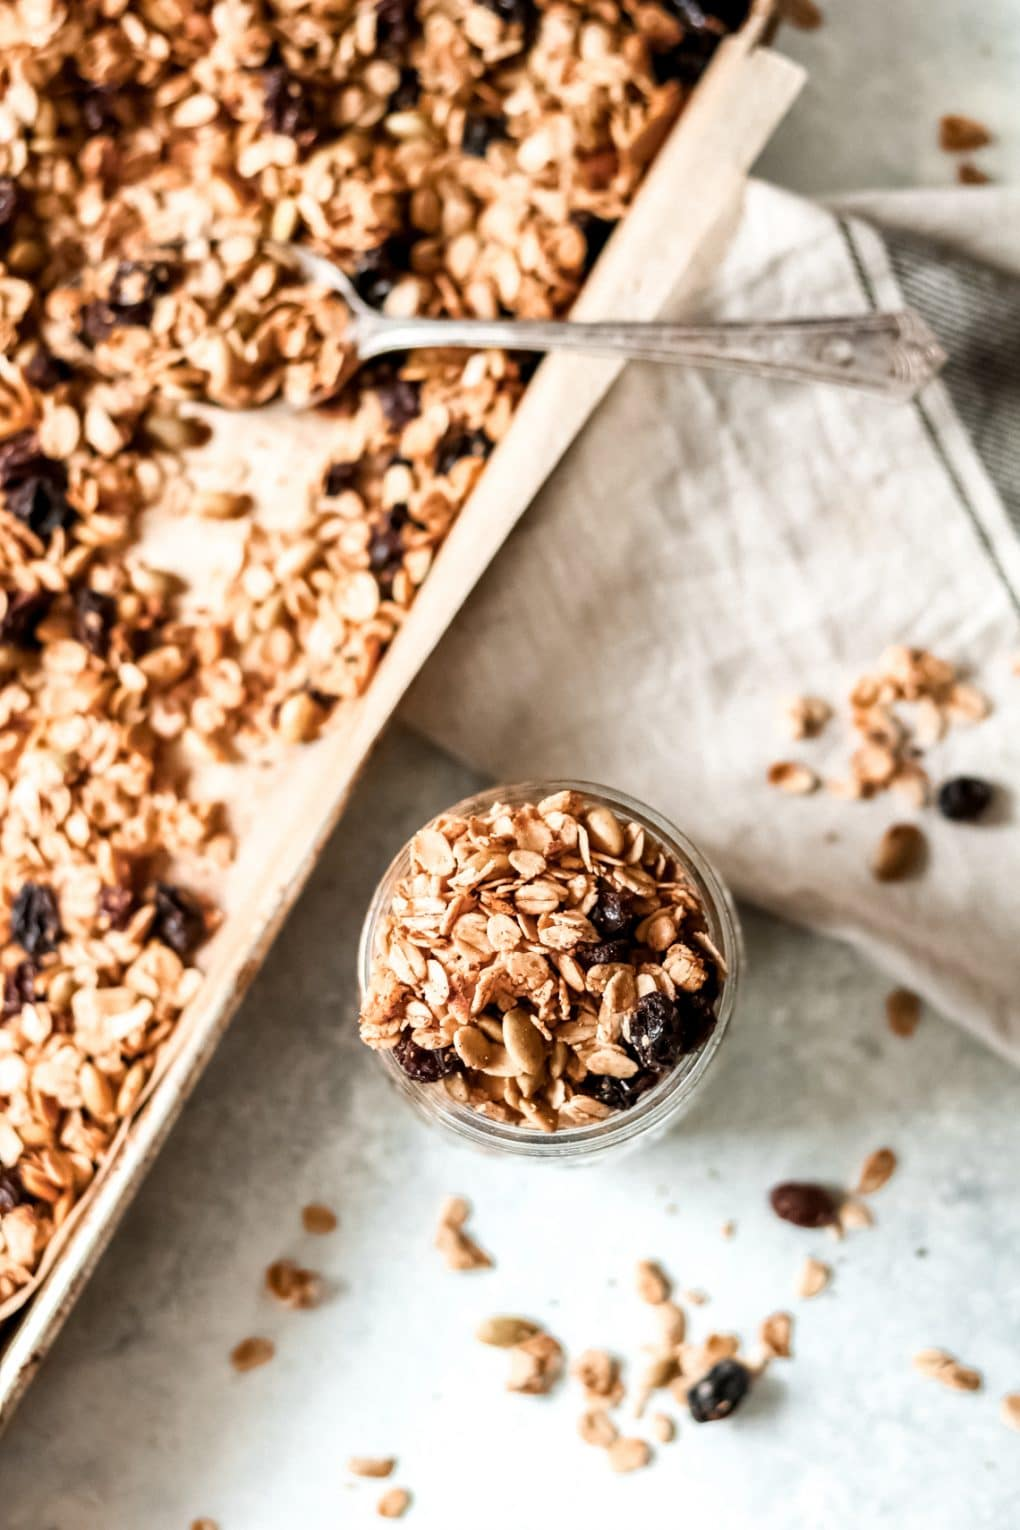 a pan of homemade cinnamon and raisin granola with a jar of granola sitting next to it